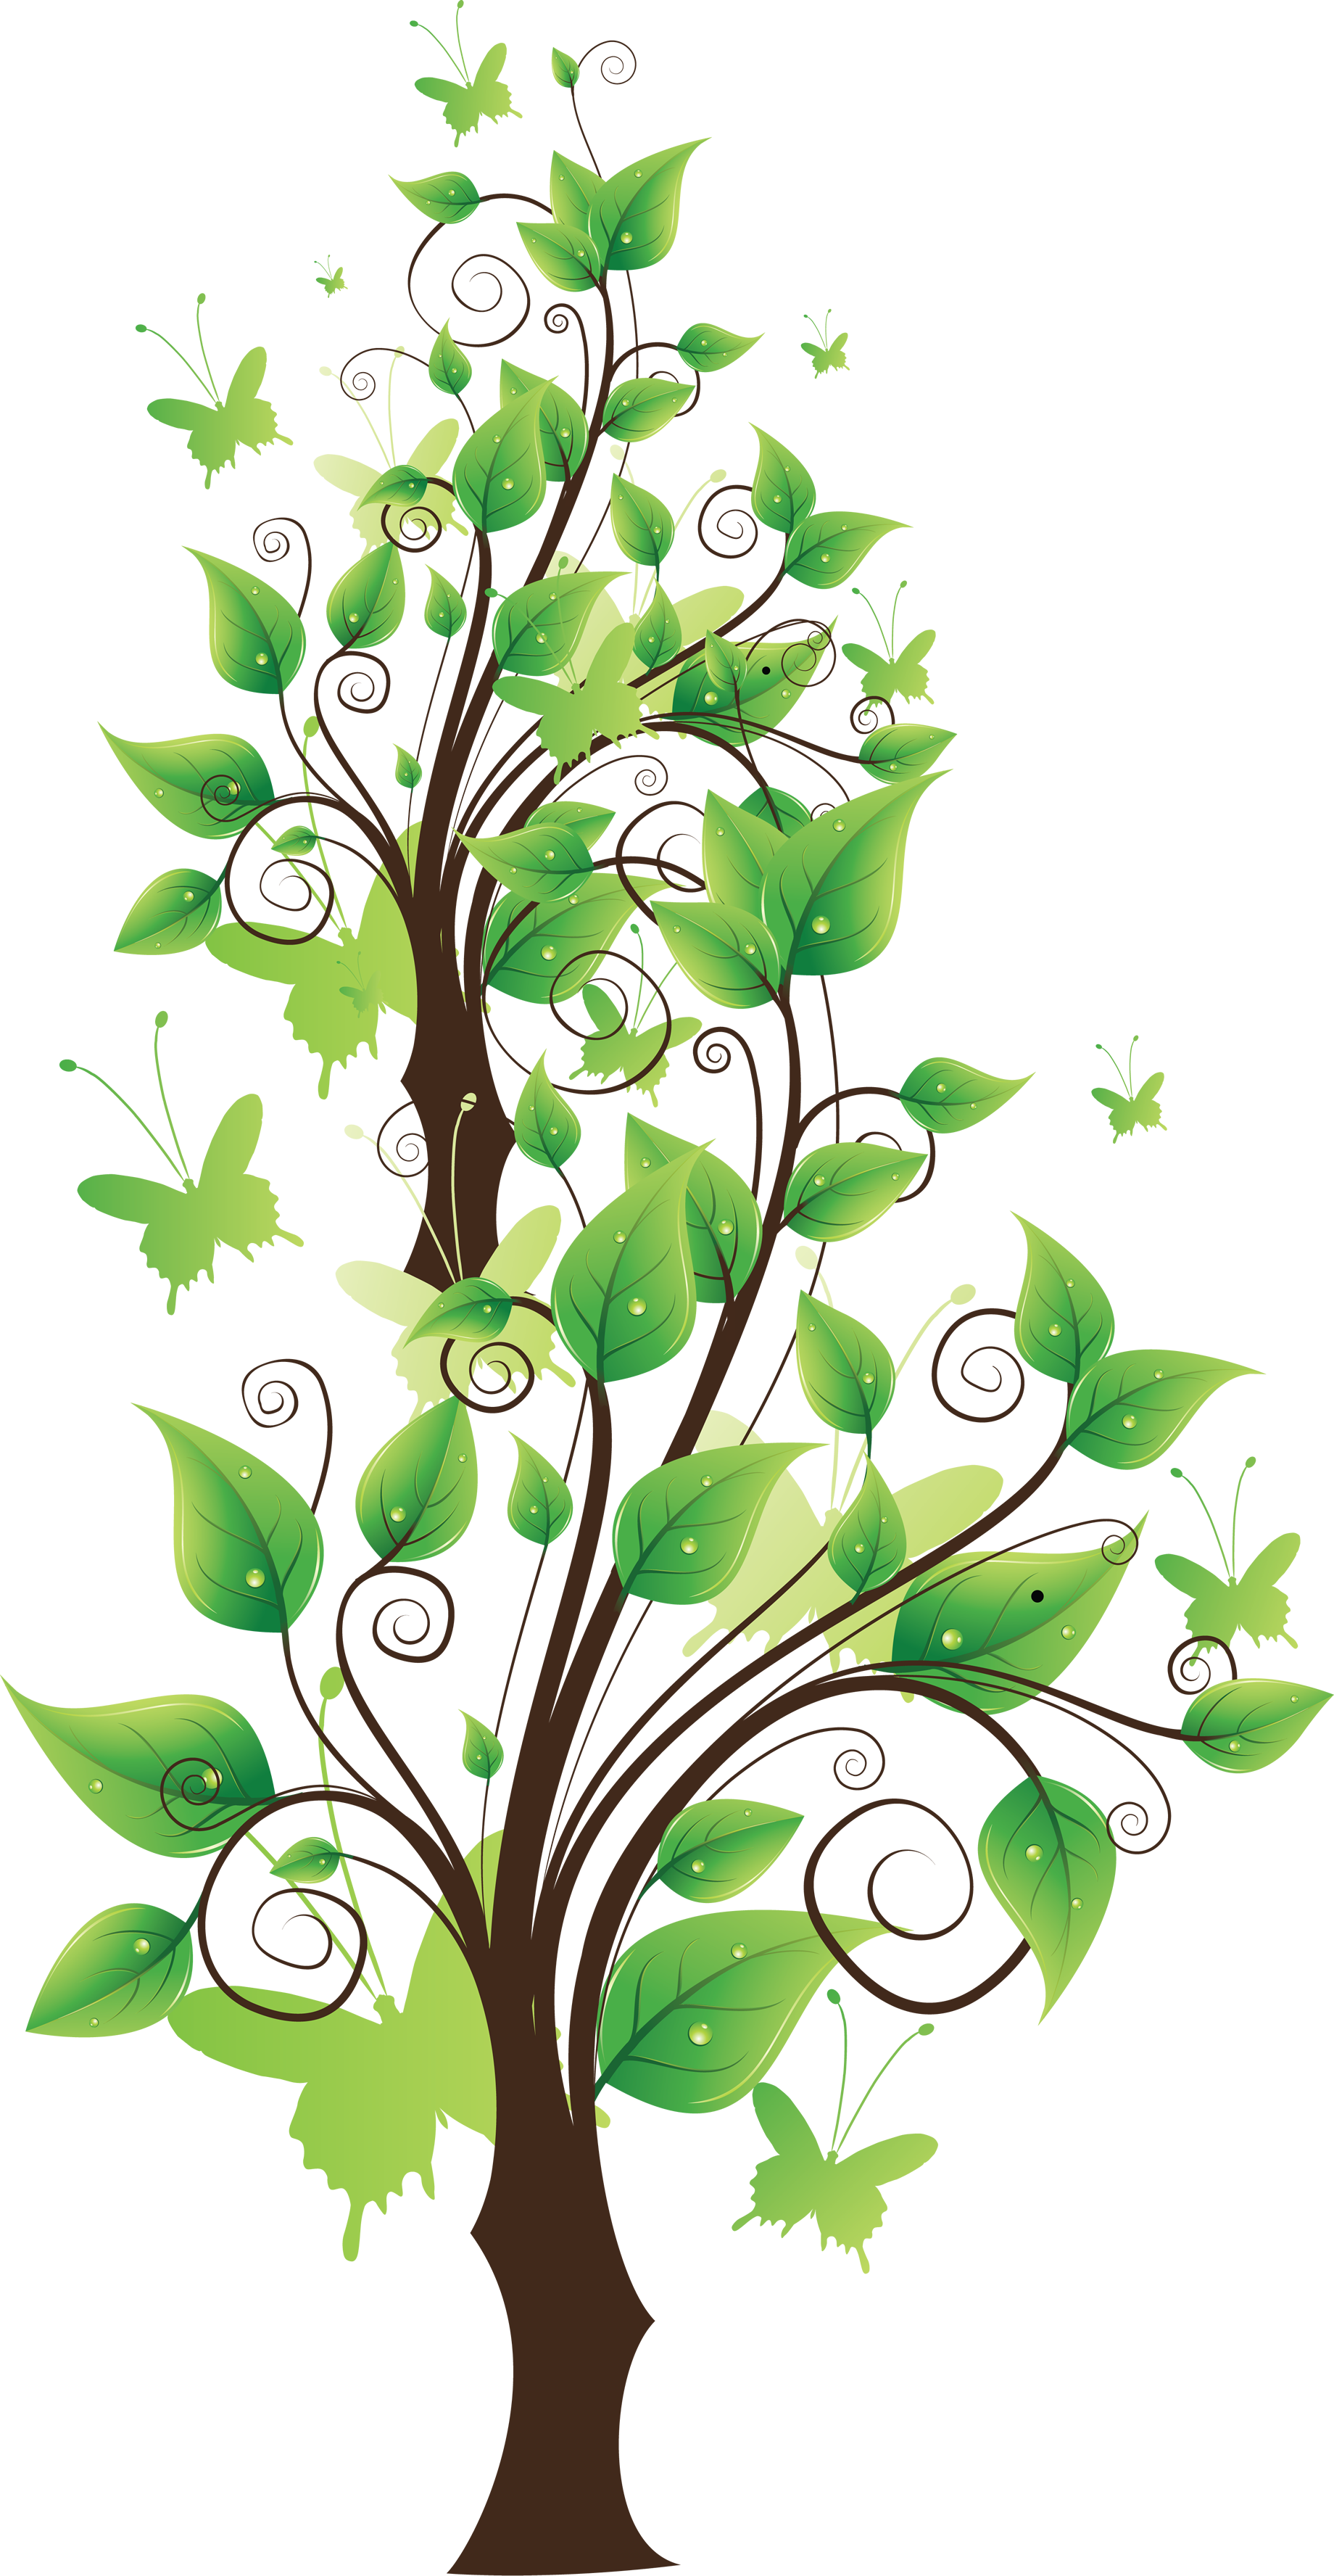 Diversity tree clipart royalty free download Png tree clipart - ClipartFest royalty free download